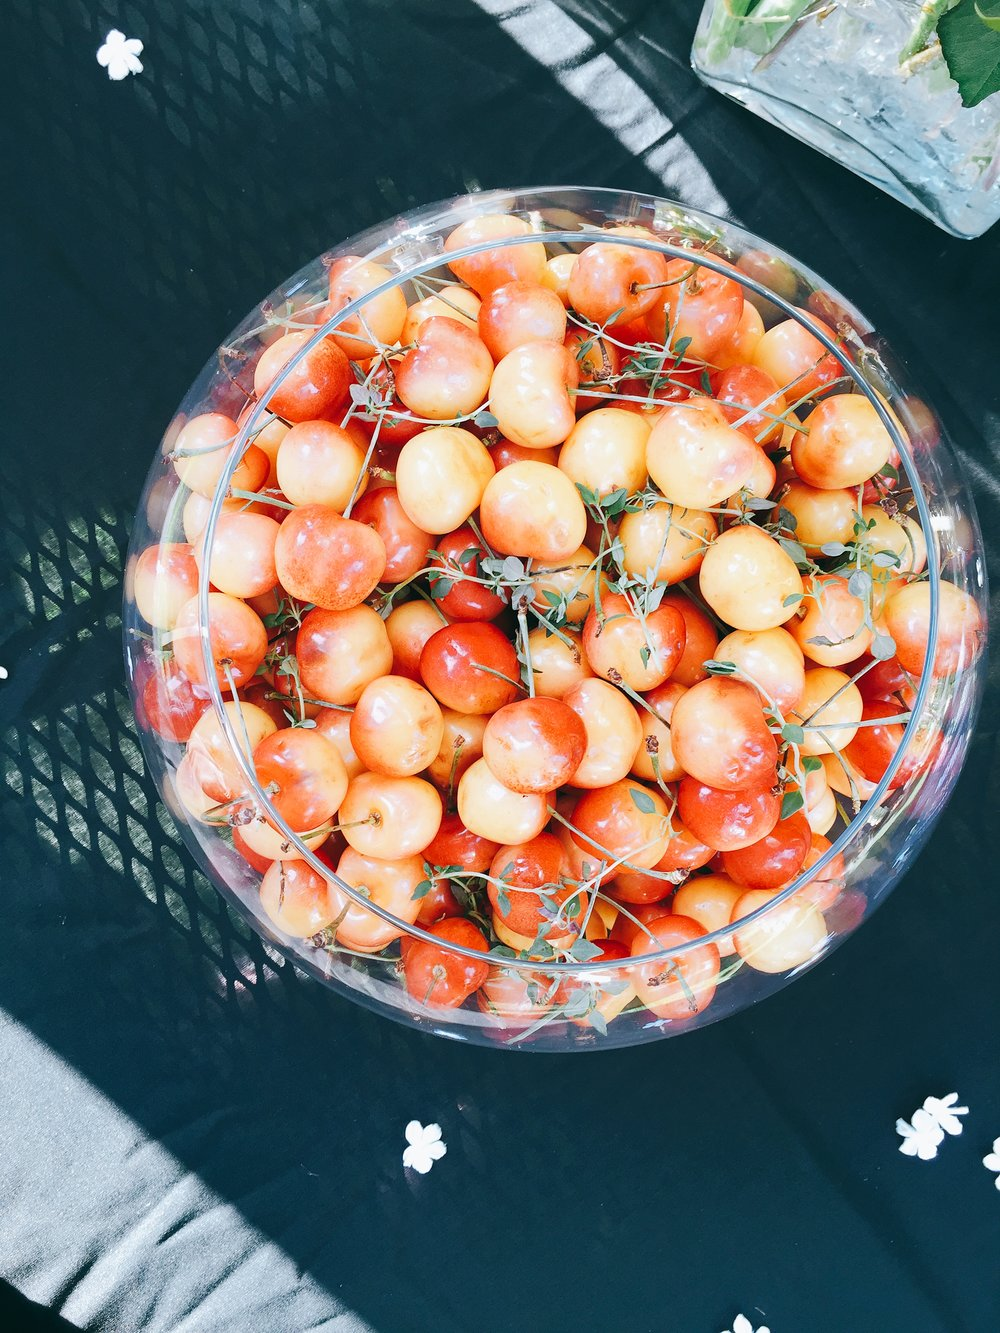 Rainier cherries especially for summer